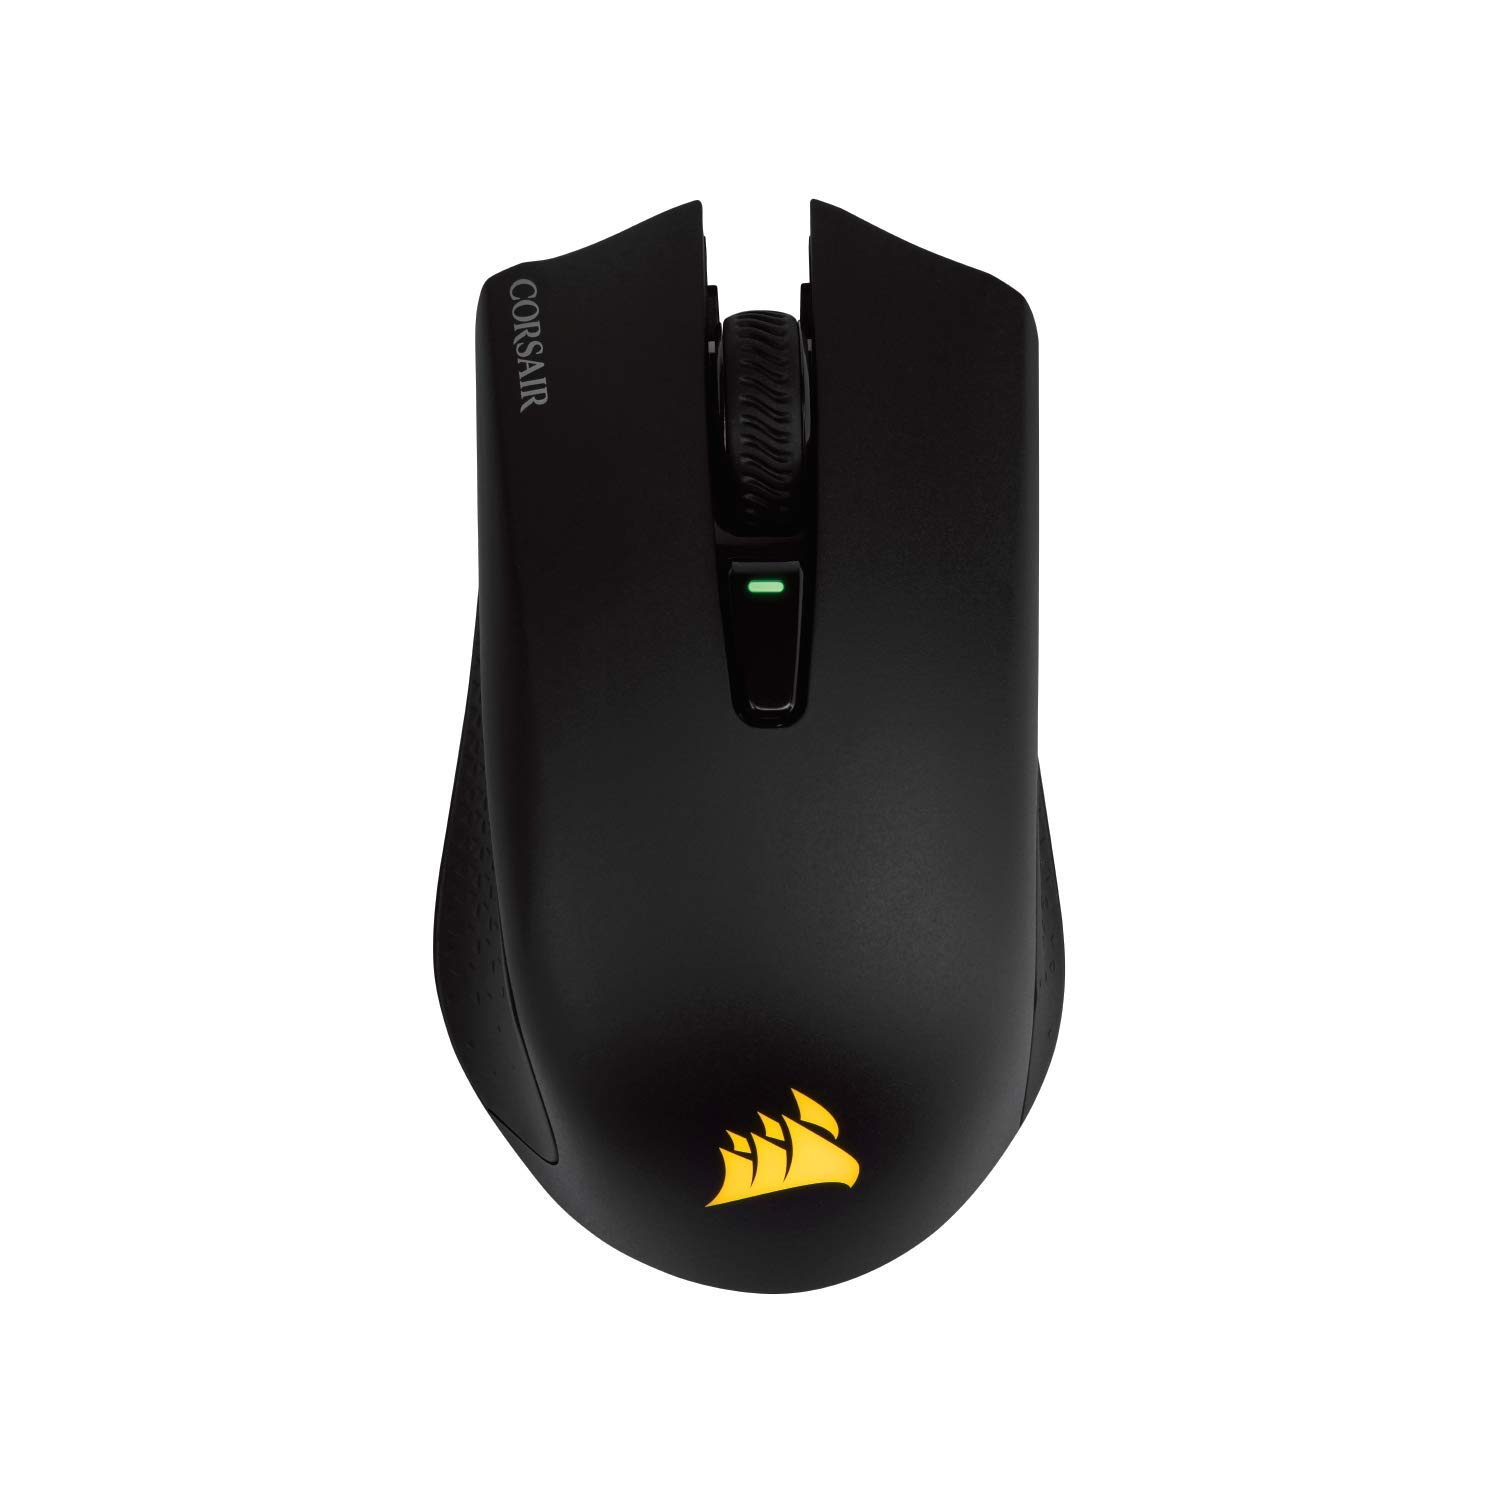 Mouse Gamer : CORSAIR Harpoon RGB Sin Cable Sin Cable Recarg